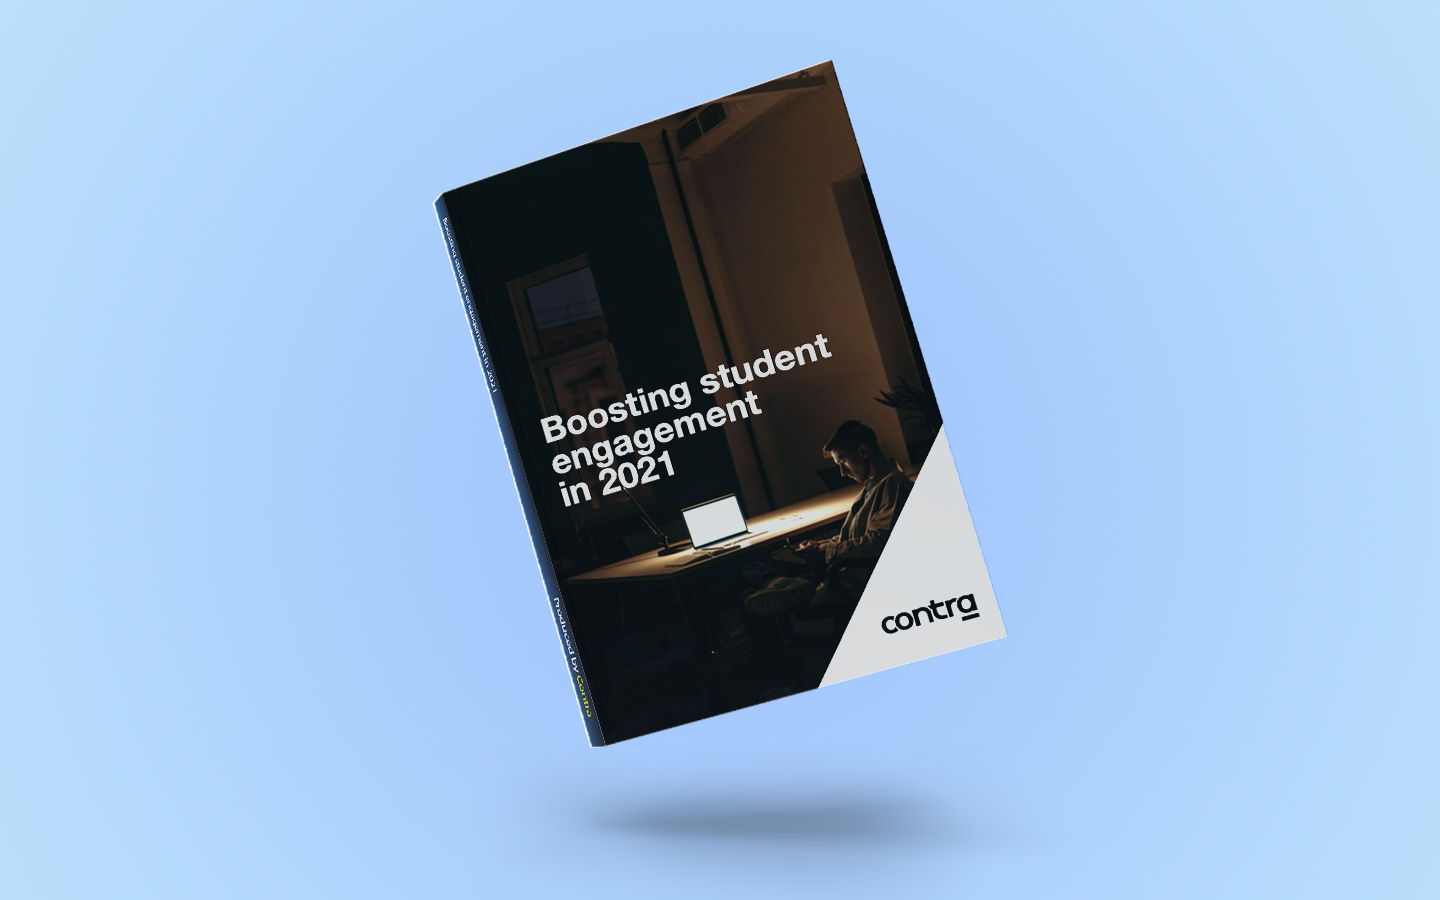 a free guide on boosting student engagement using digital marketing